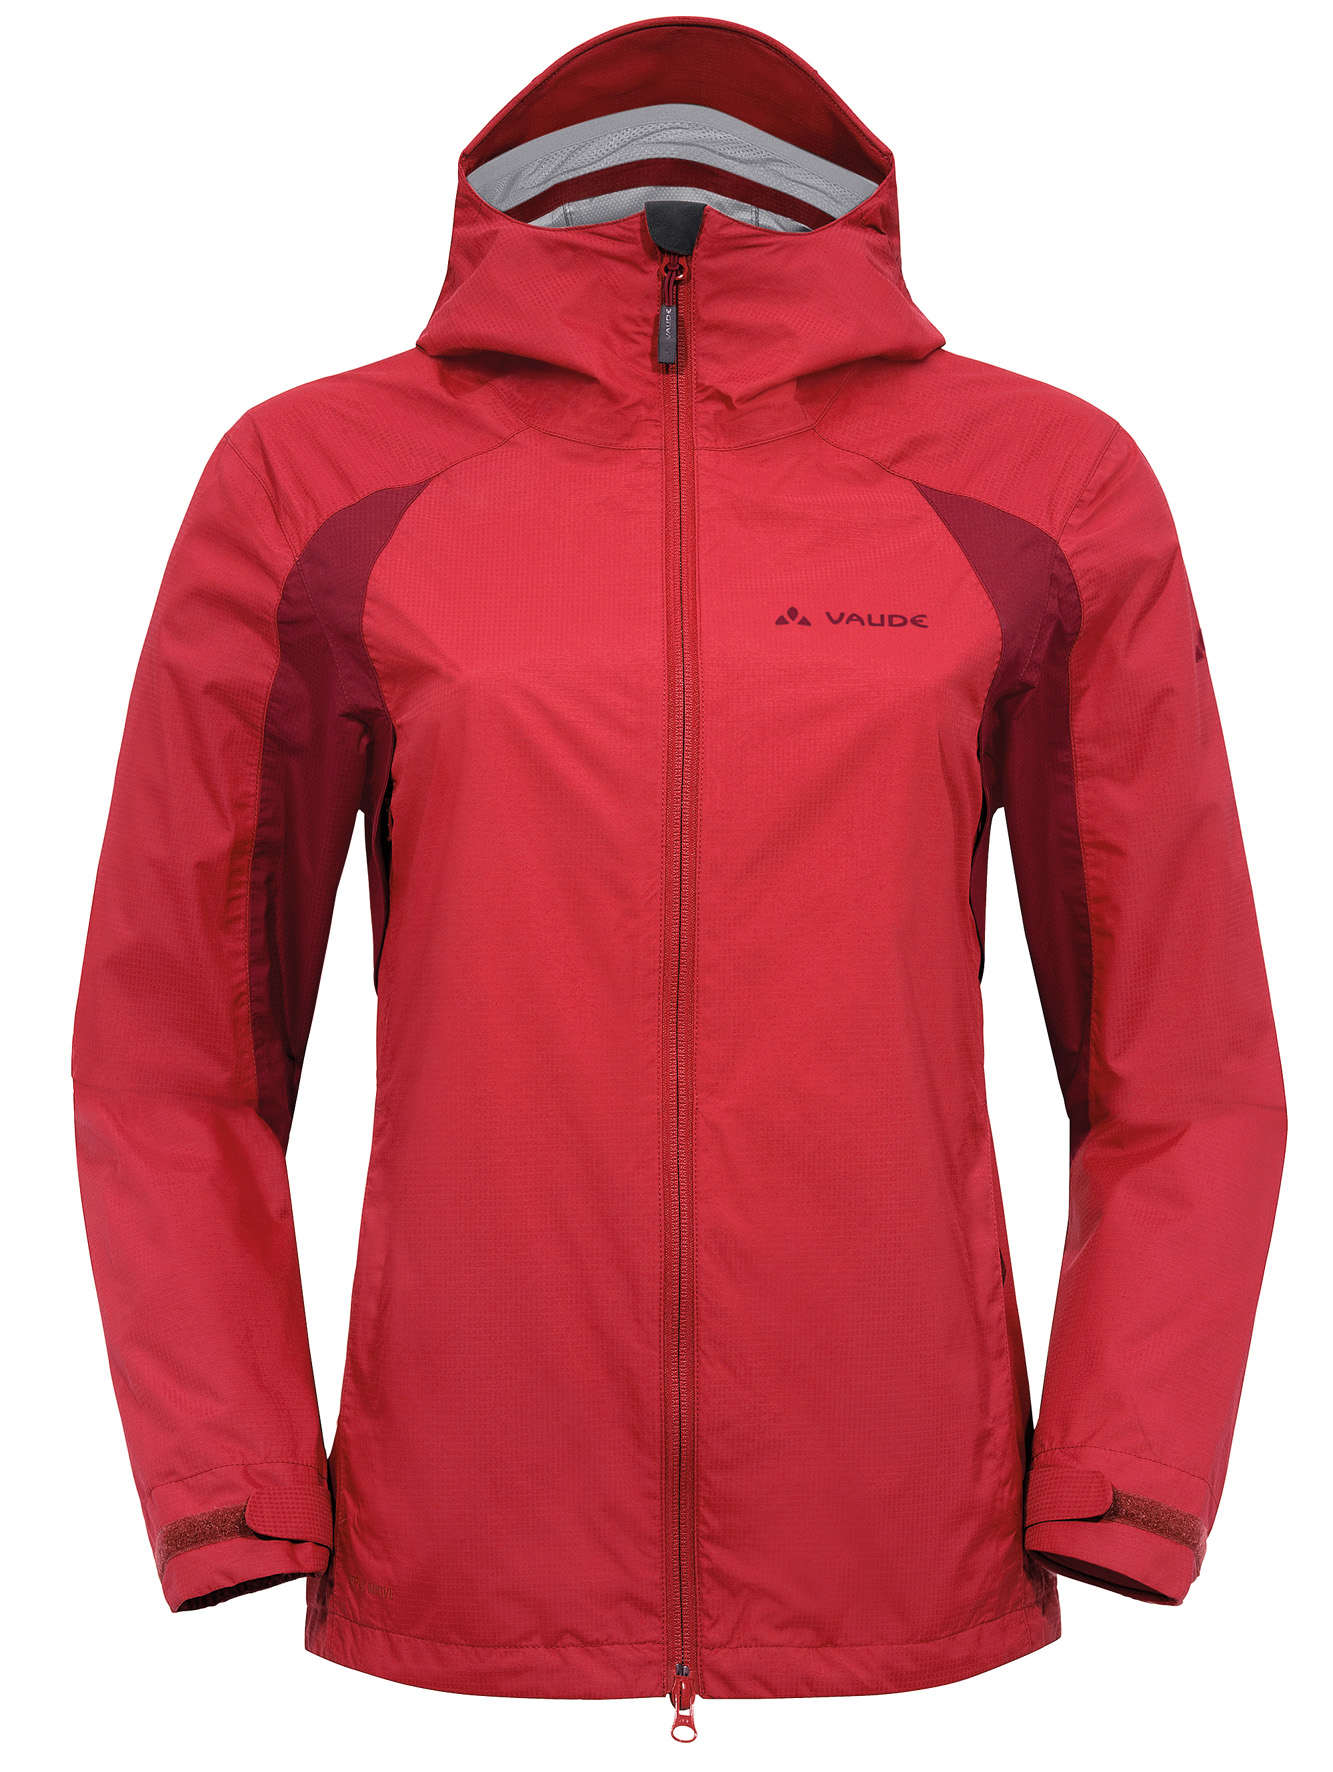 VAUDE Women´s Yaras Jacket red Größe 46 - schneider-sports